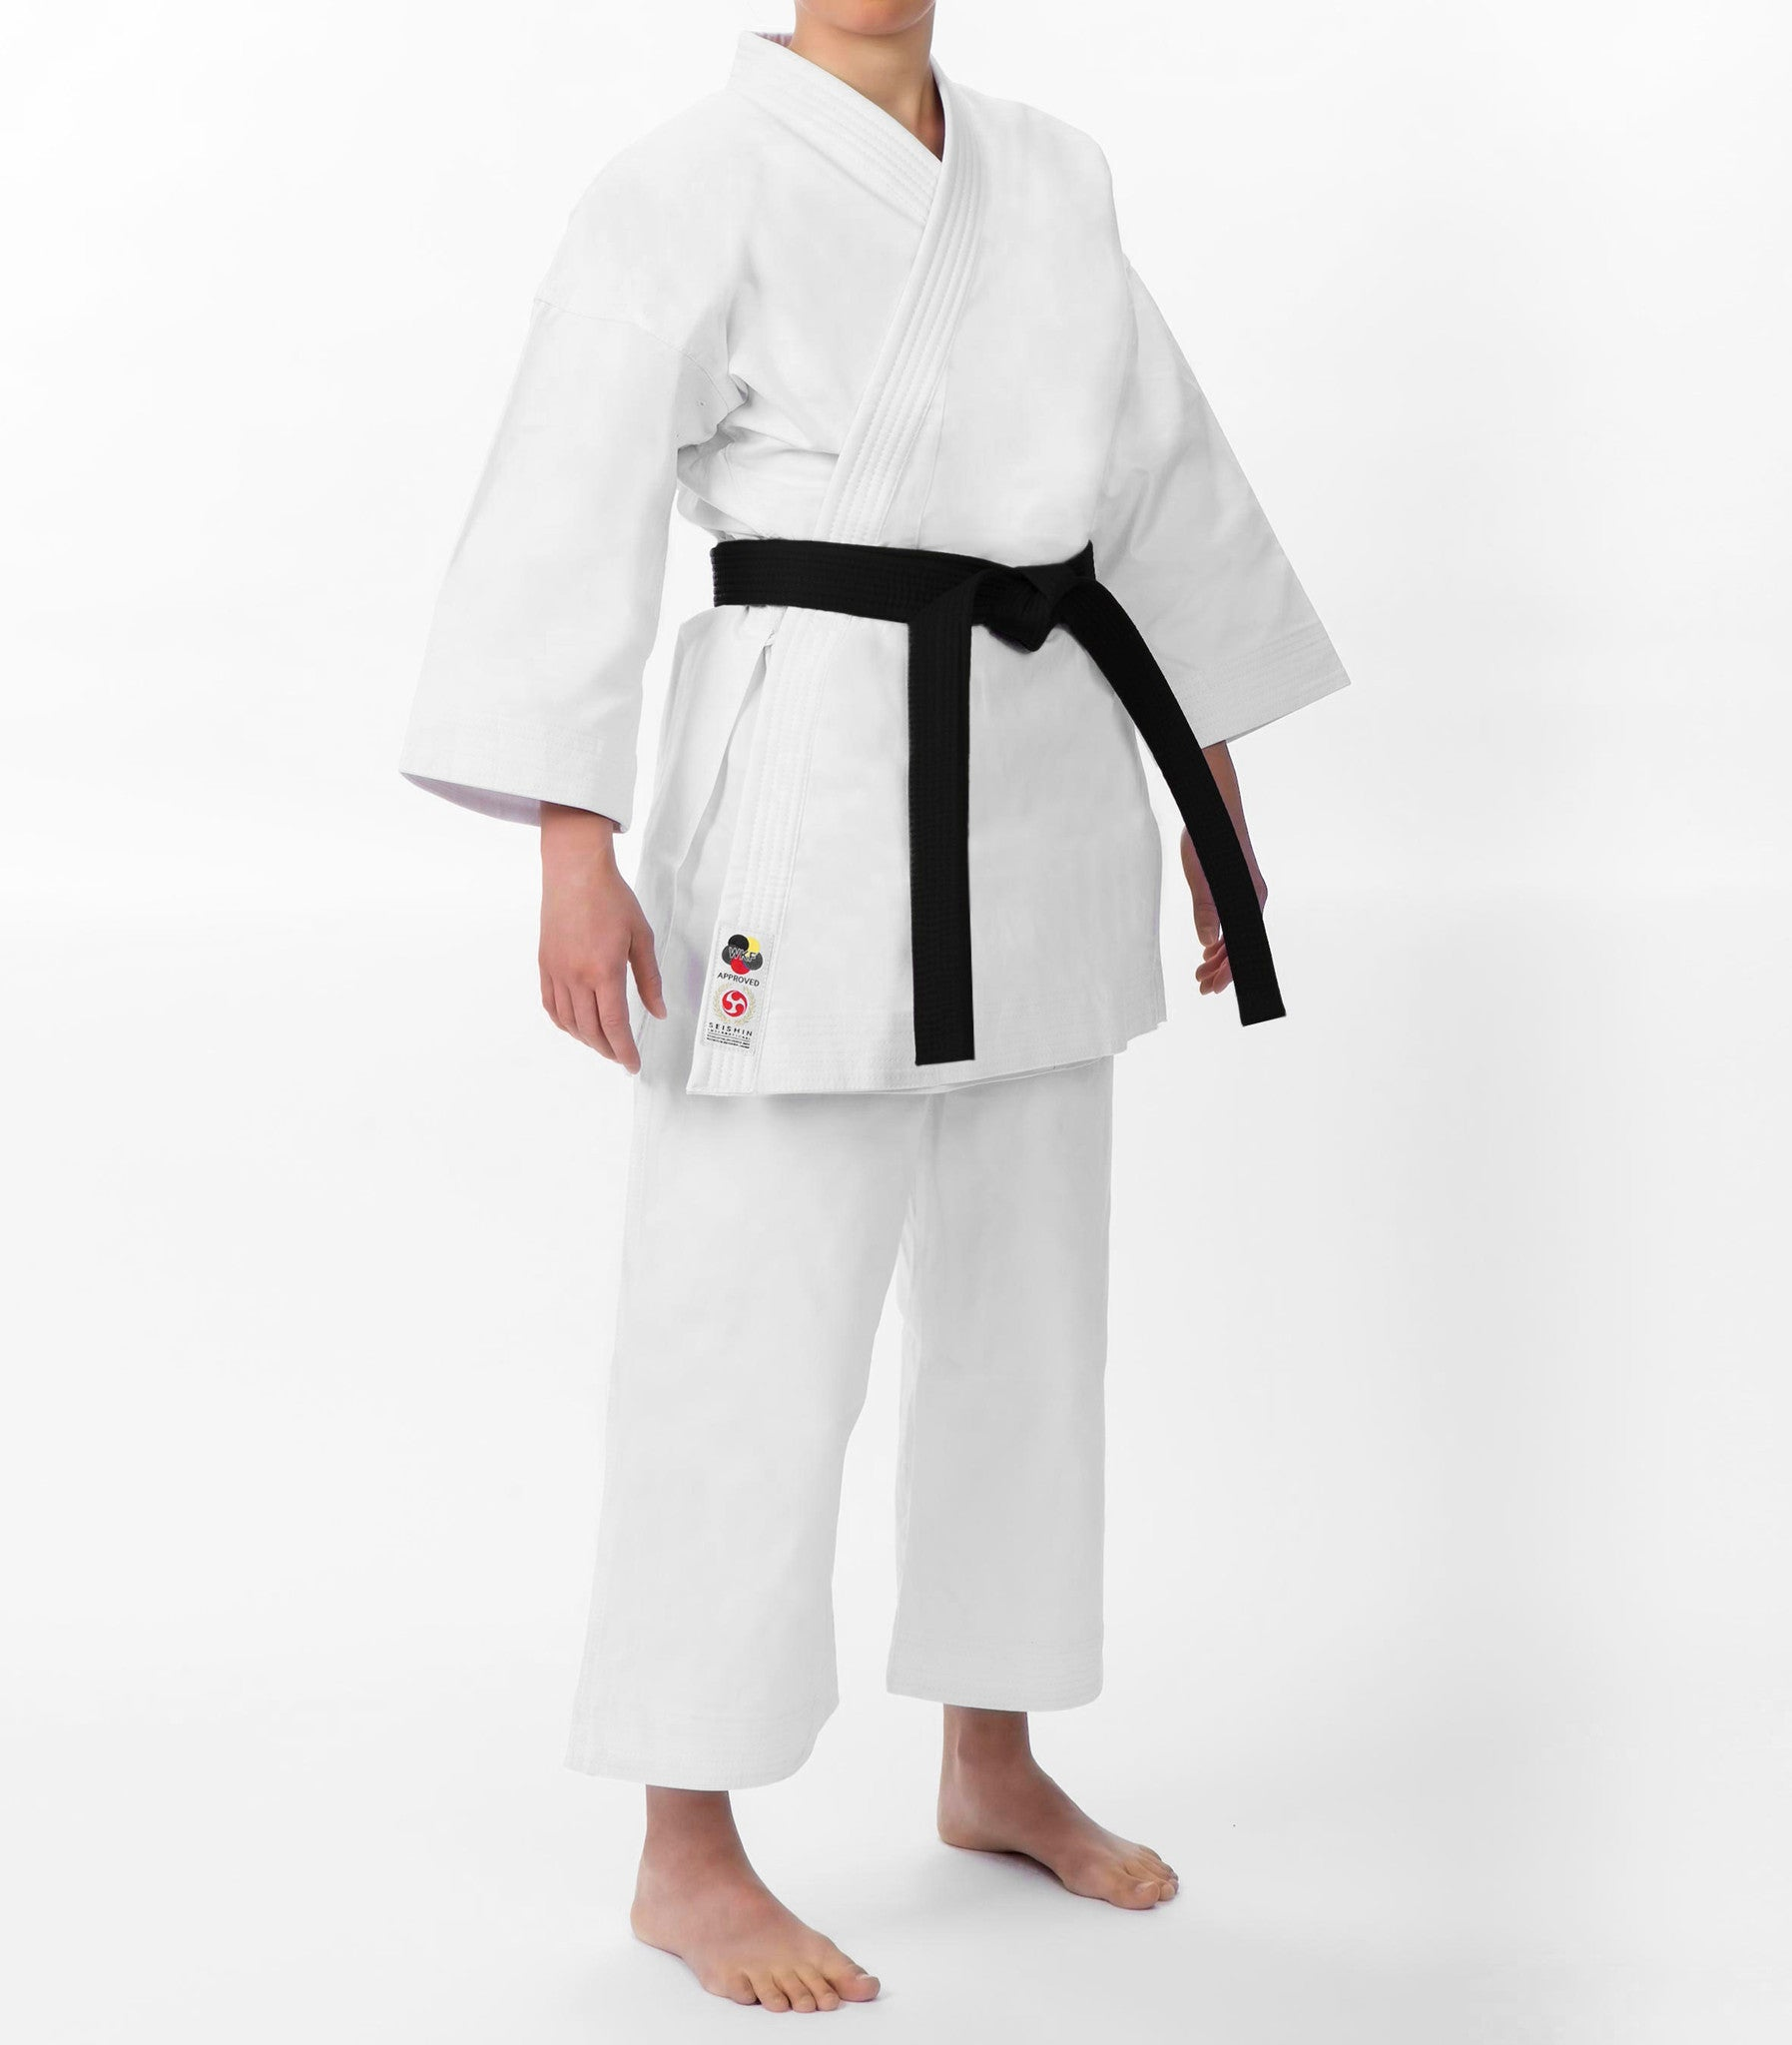 Seishin Karate Gi Female Seishin Usa